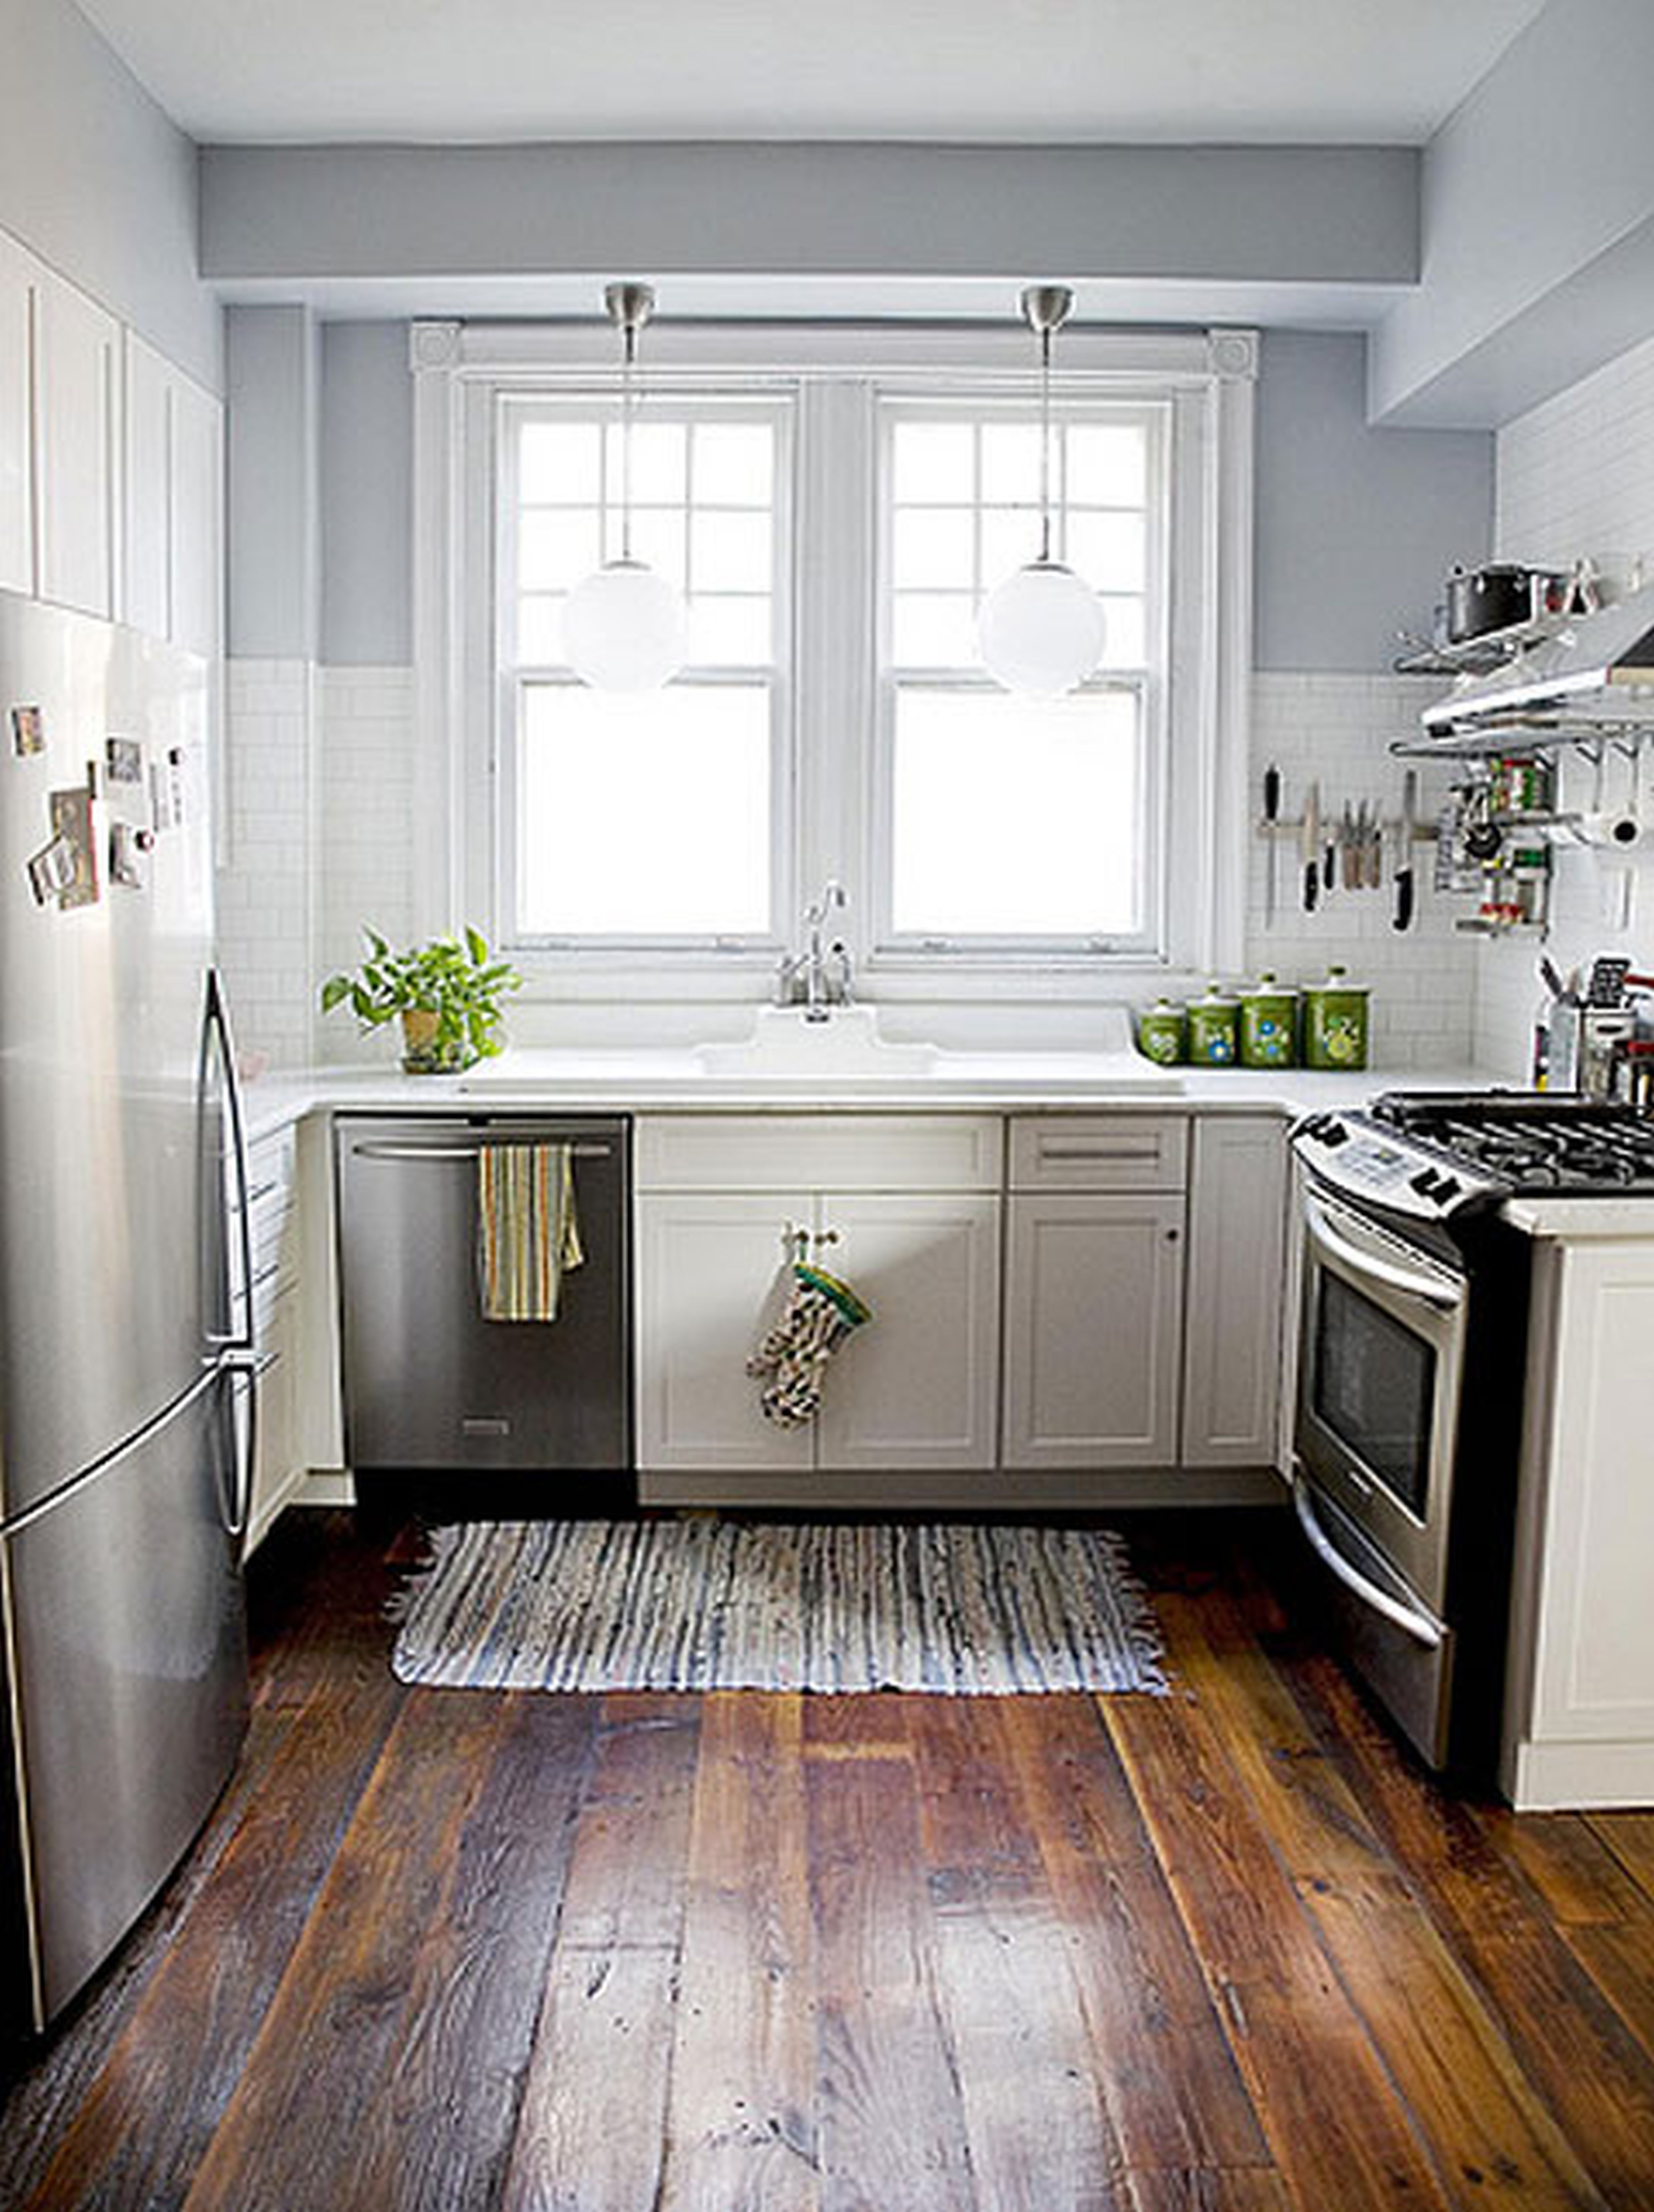 Ikea Kitchen Ideas Small 73 Best Photos In Endearing Design